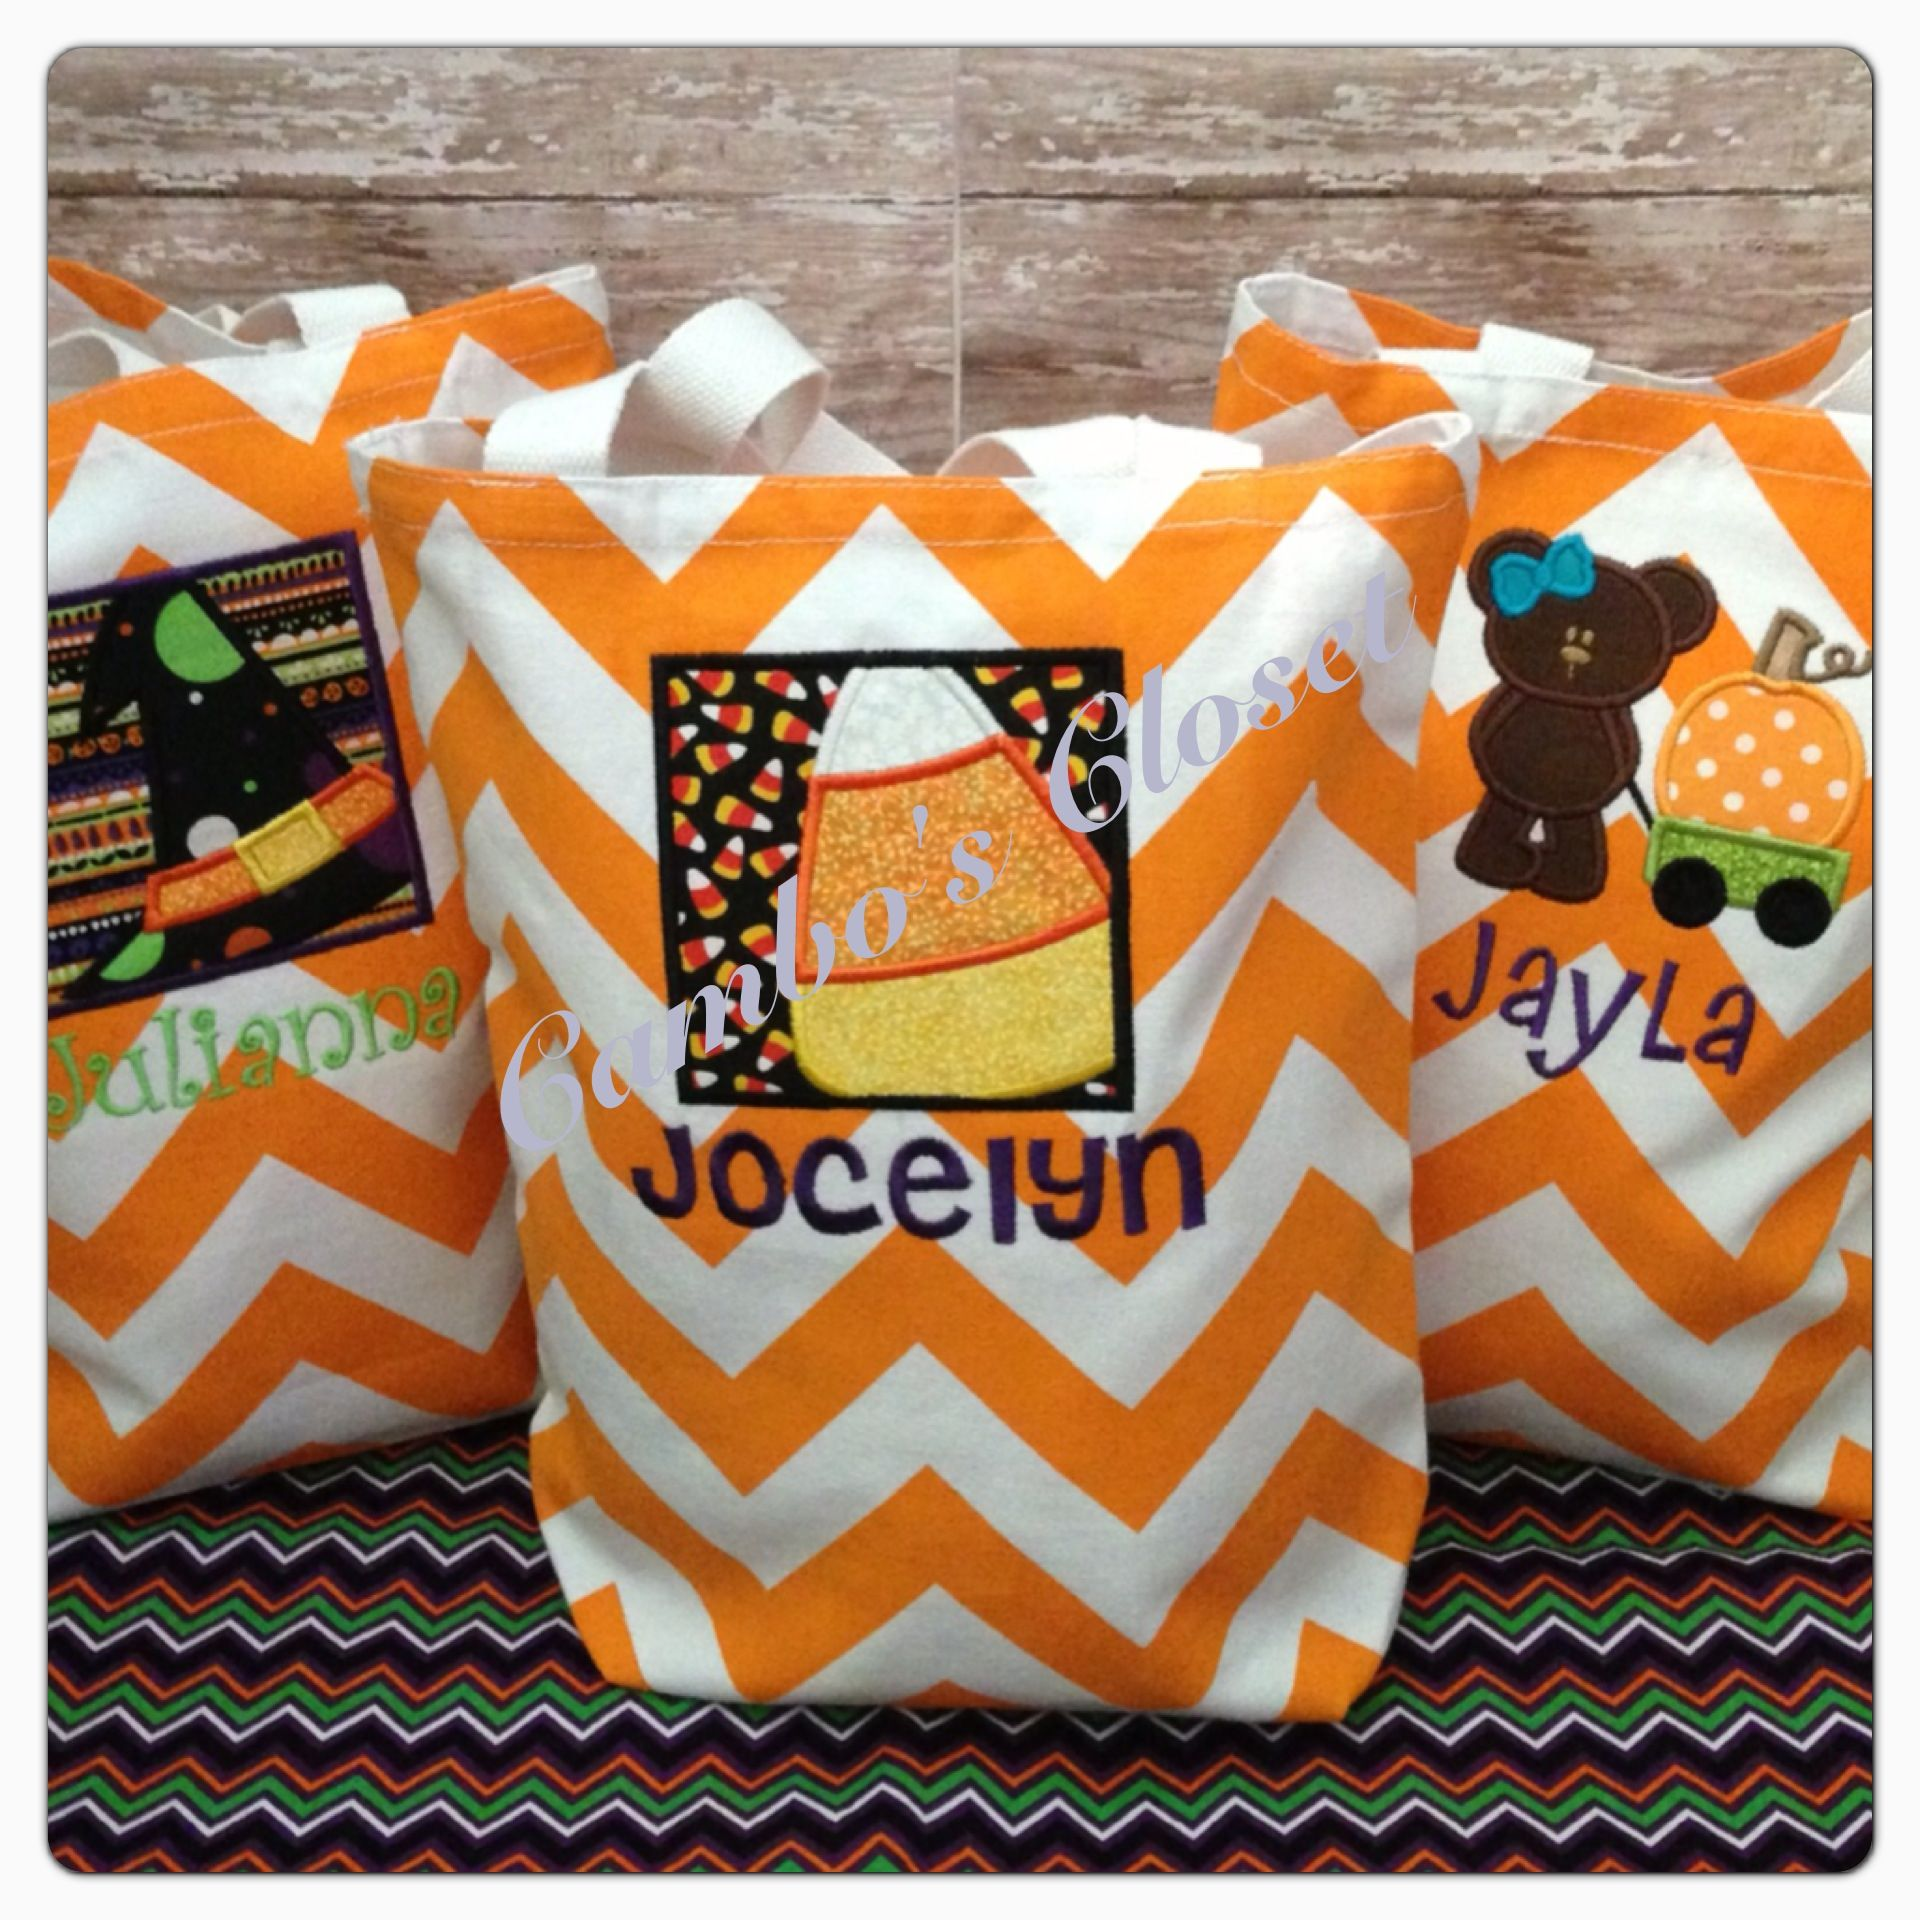 Trick or treat bags. Contact camboscloset@gmail.com or like us on Facebook